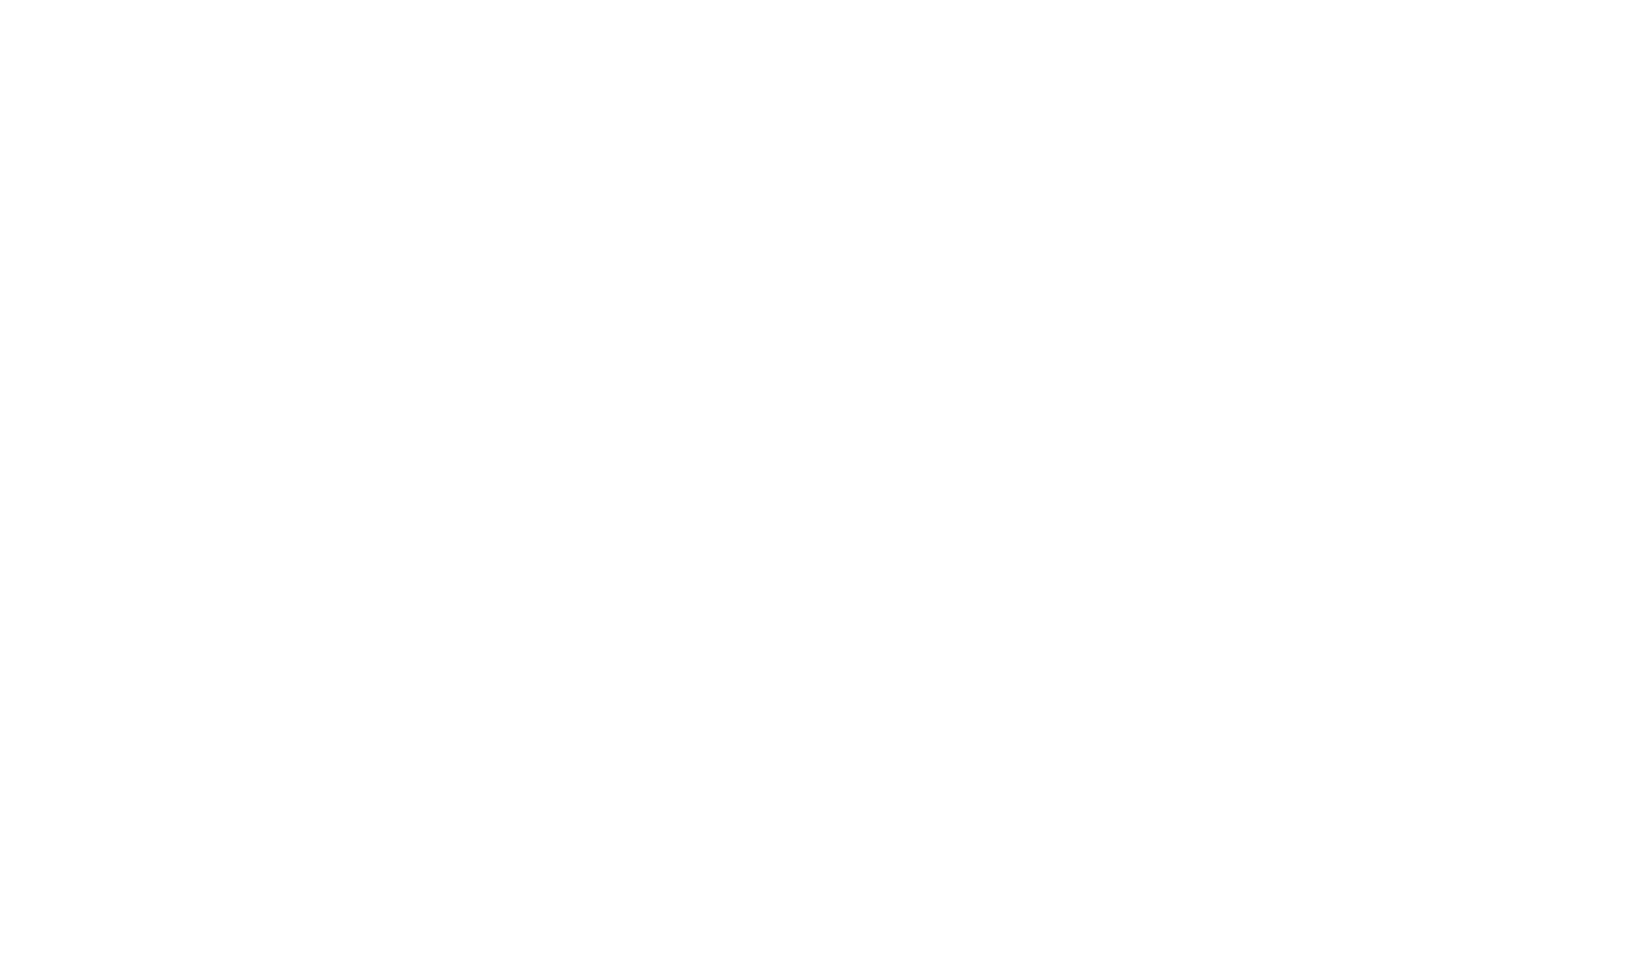 Mechanism of action of Forslean